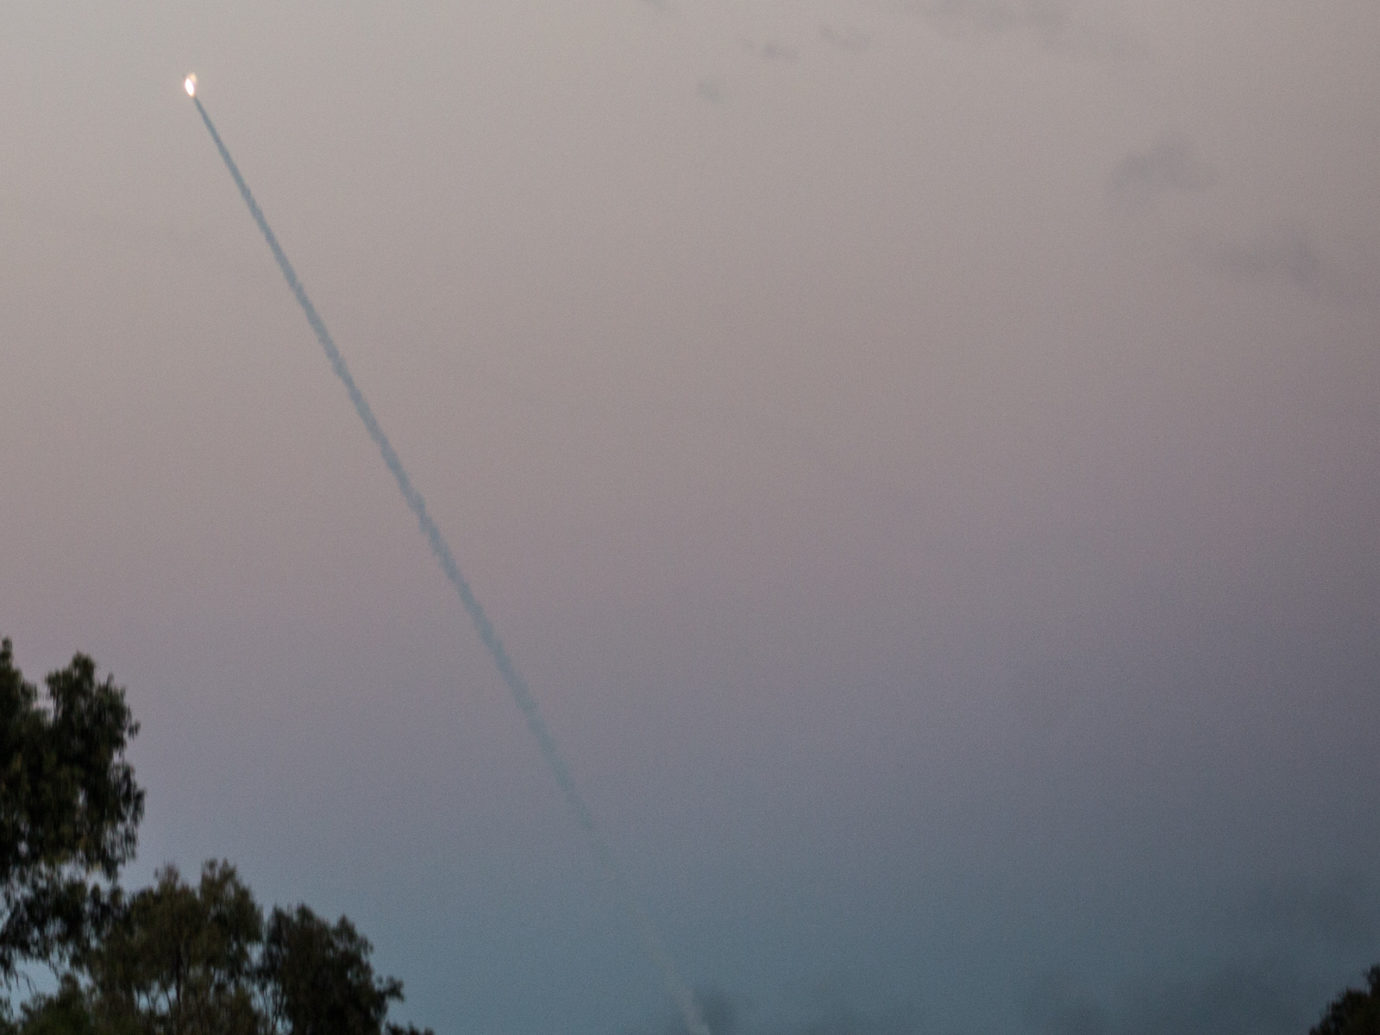 Iron Dome missiles intercept rockets from Gaza seen in the sky in Southern Israel Nov. 12 2018